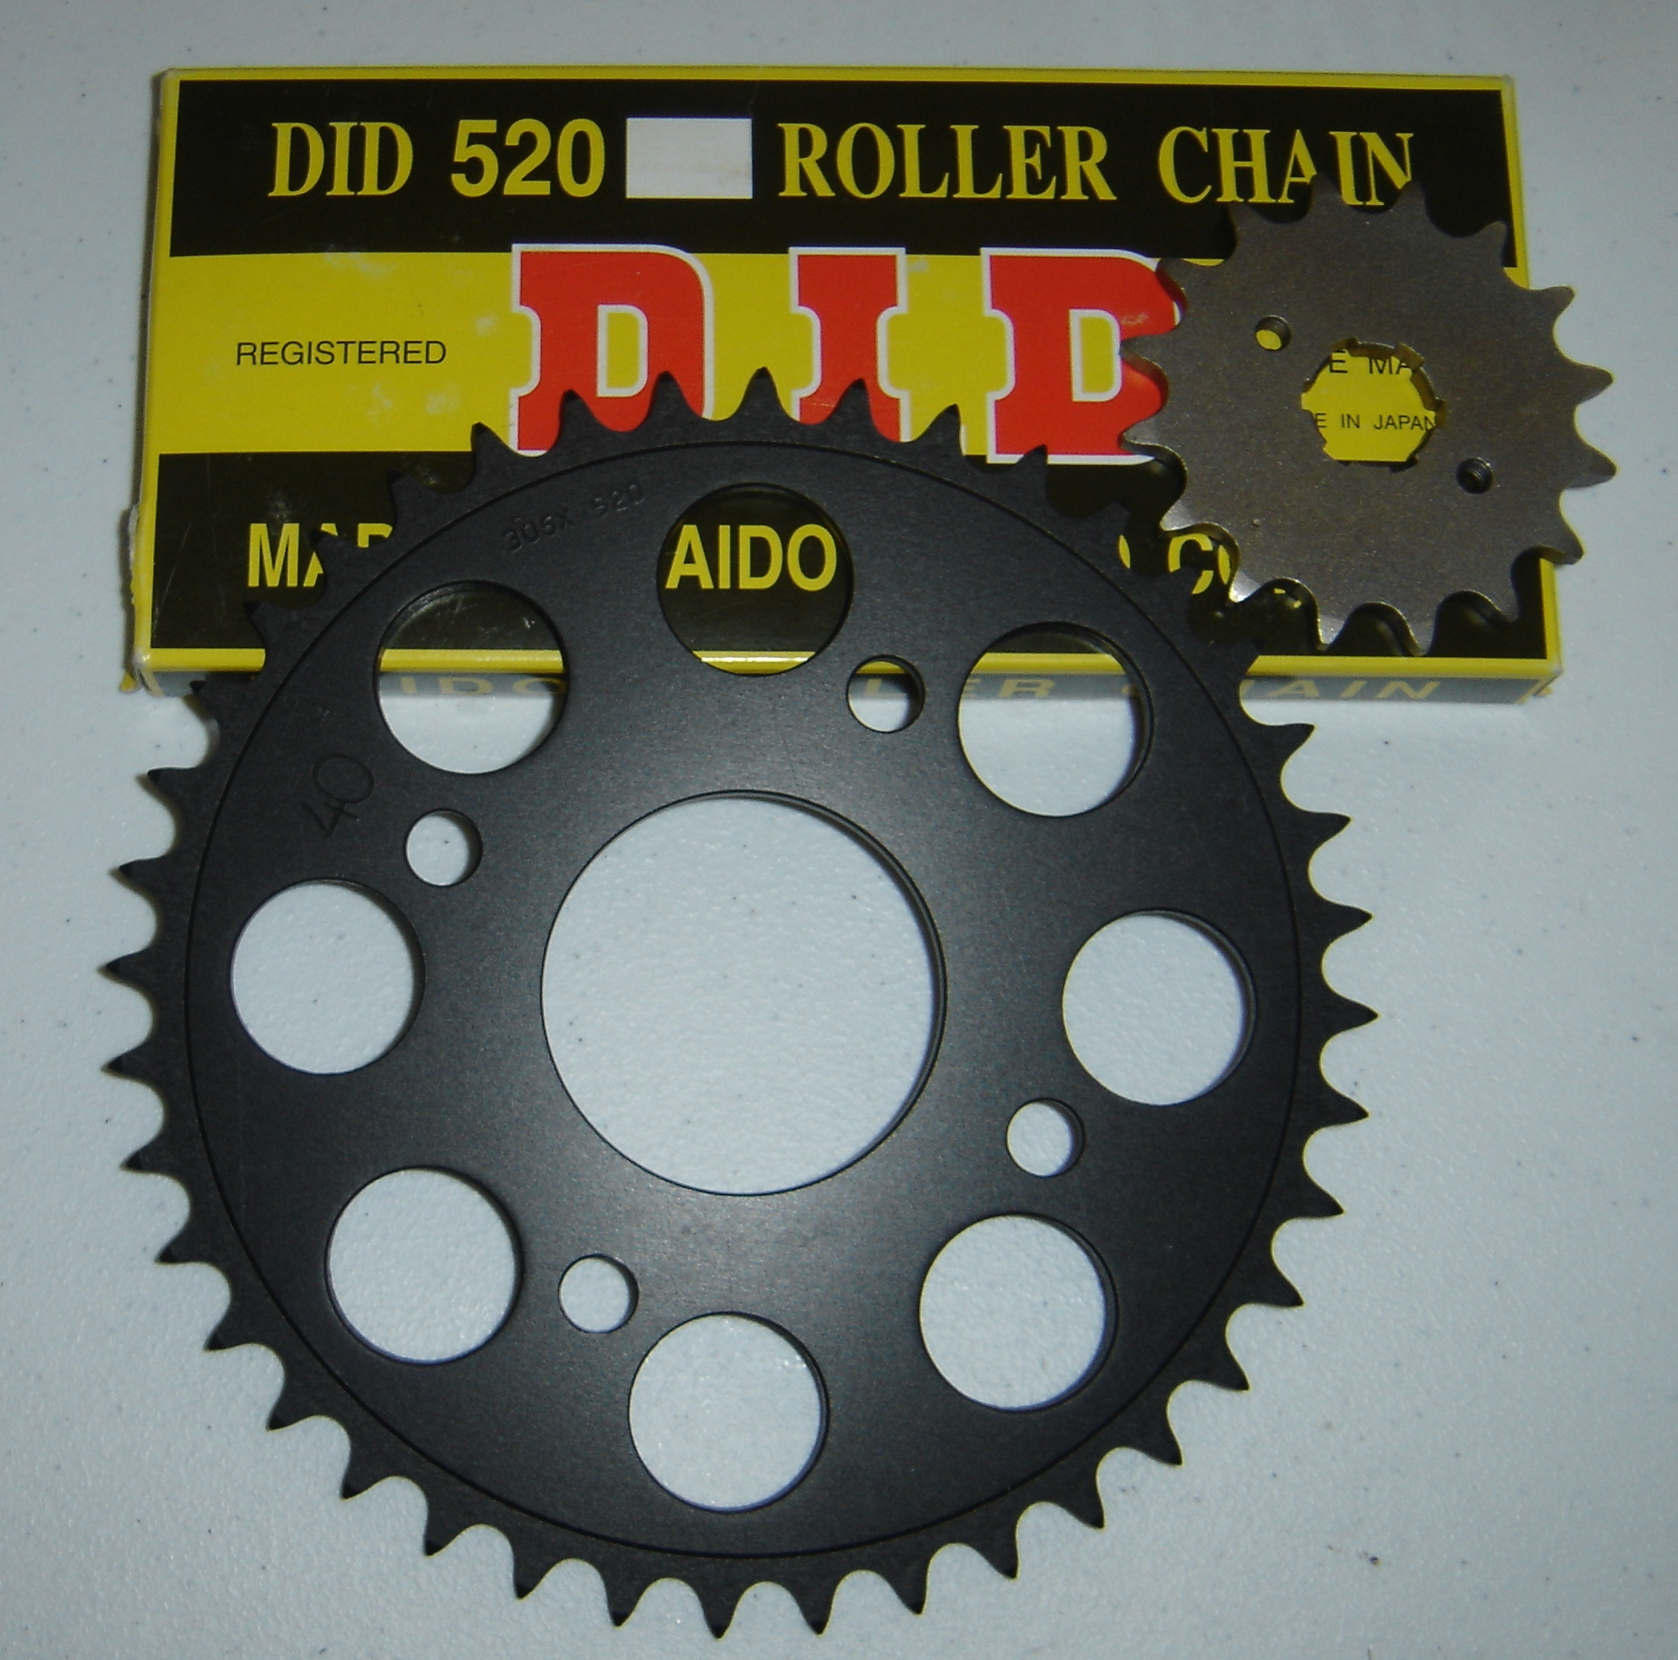 Yamaha Rd350 Parts Accessories Economy Cycle Oval Track Pro Tach Wiring 520 Chain Sprocket Conversion Kit For Rd250 350 400